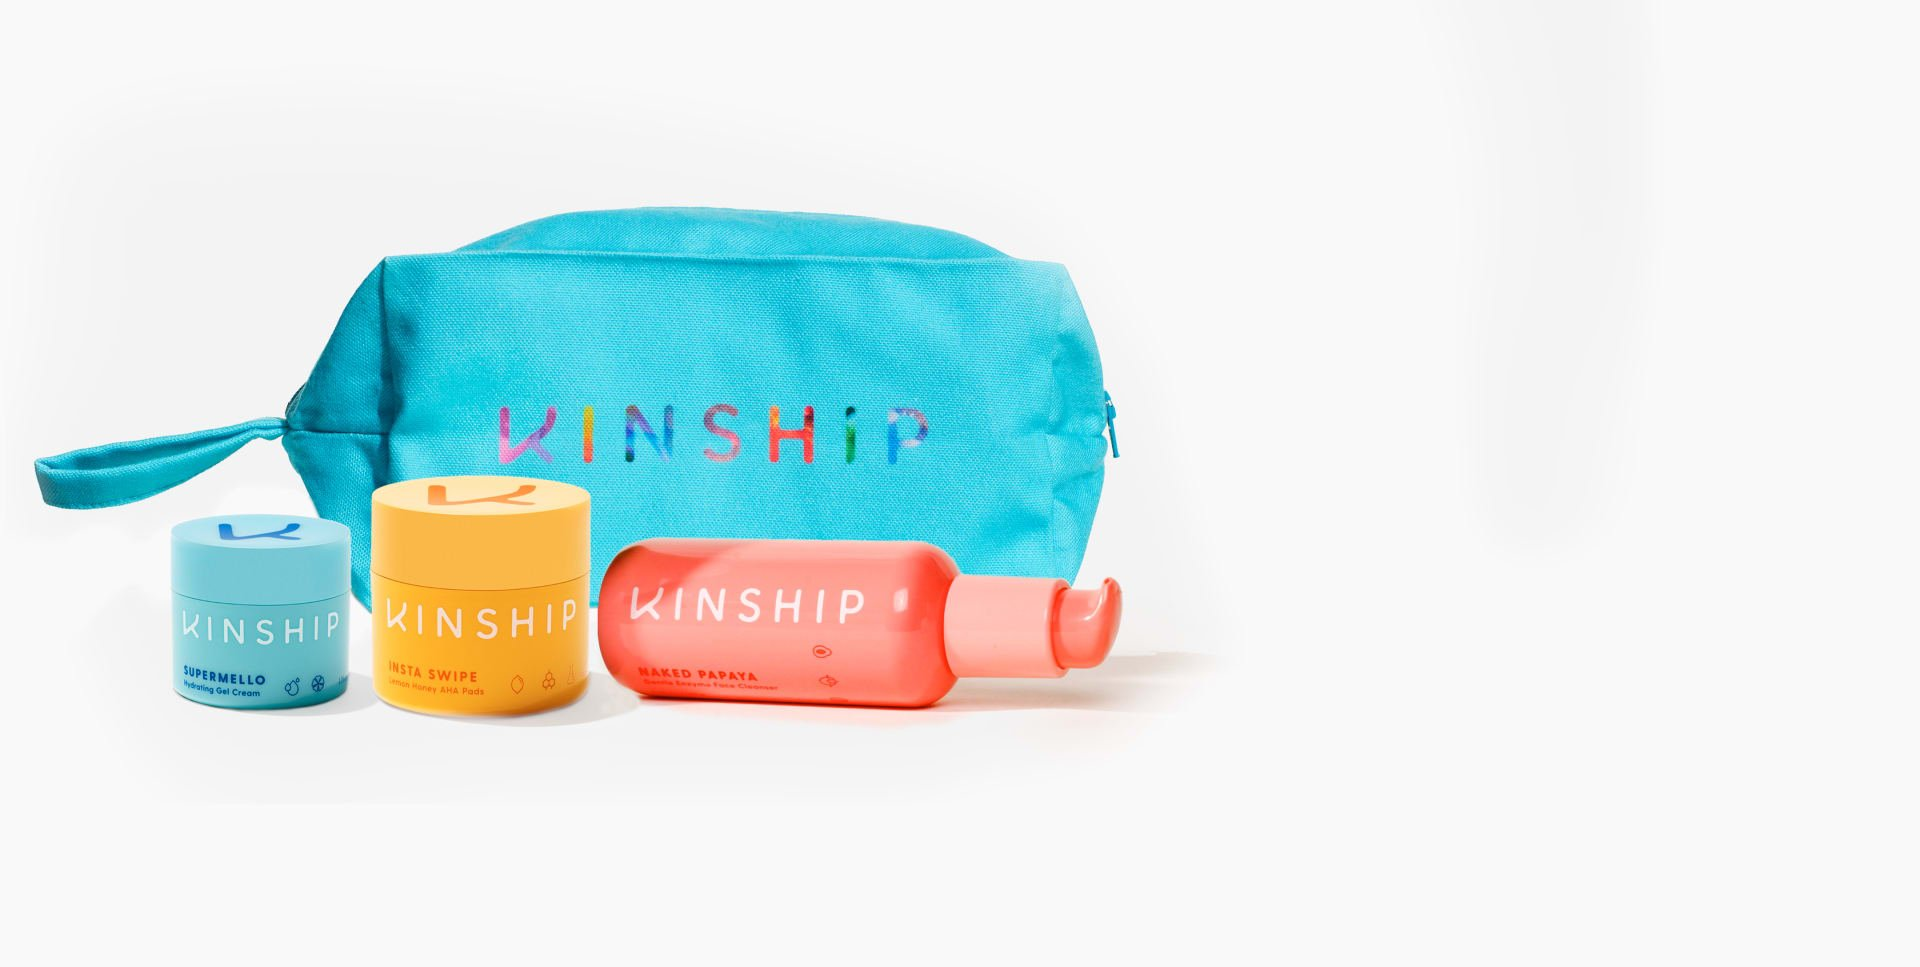 Supermello, Insta Swipe, Naked Papaya and Dopp Kit | Kinship